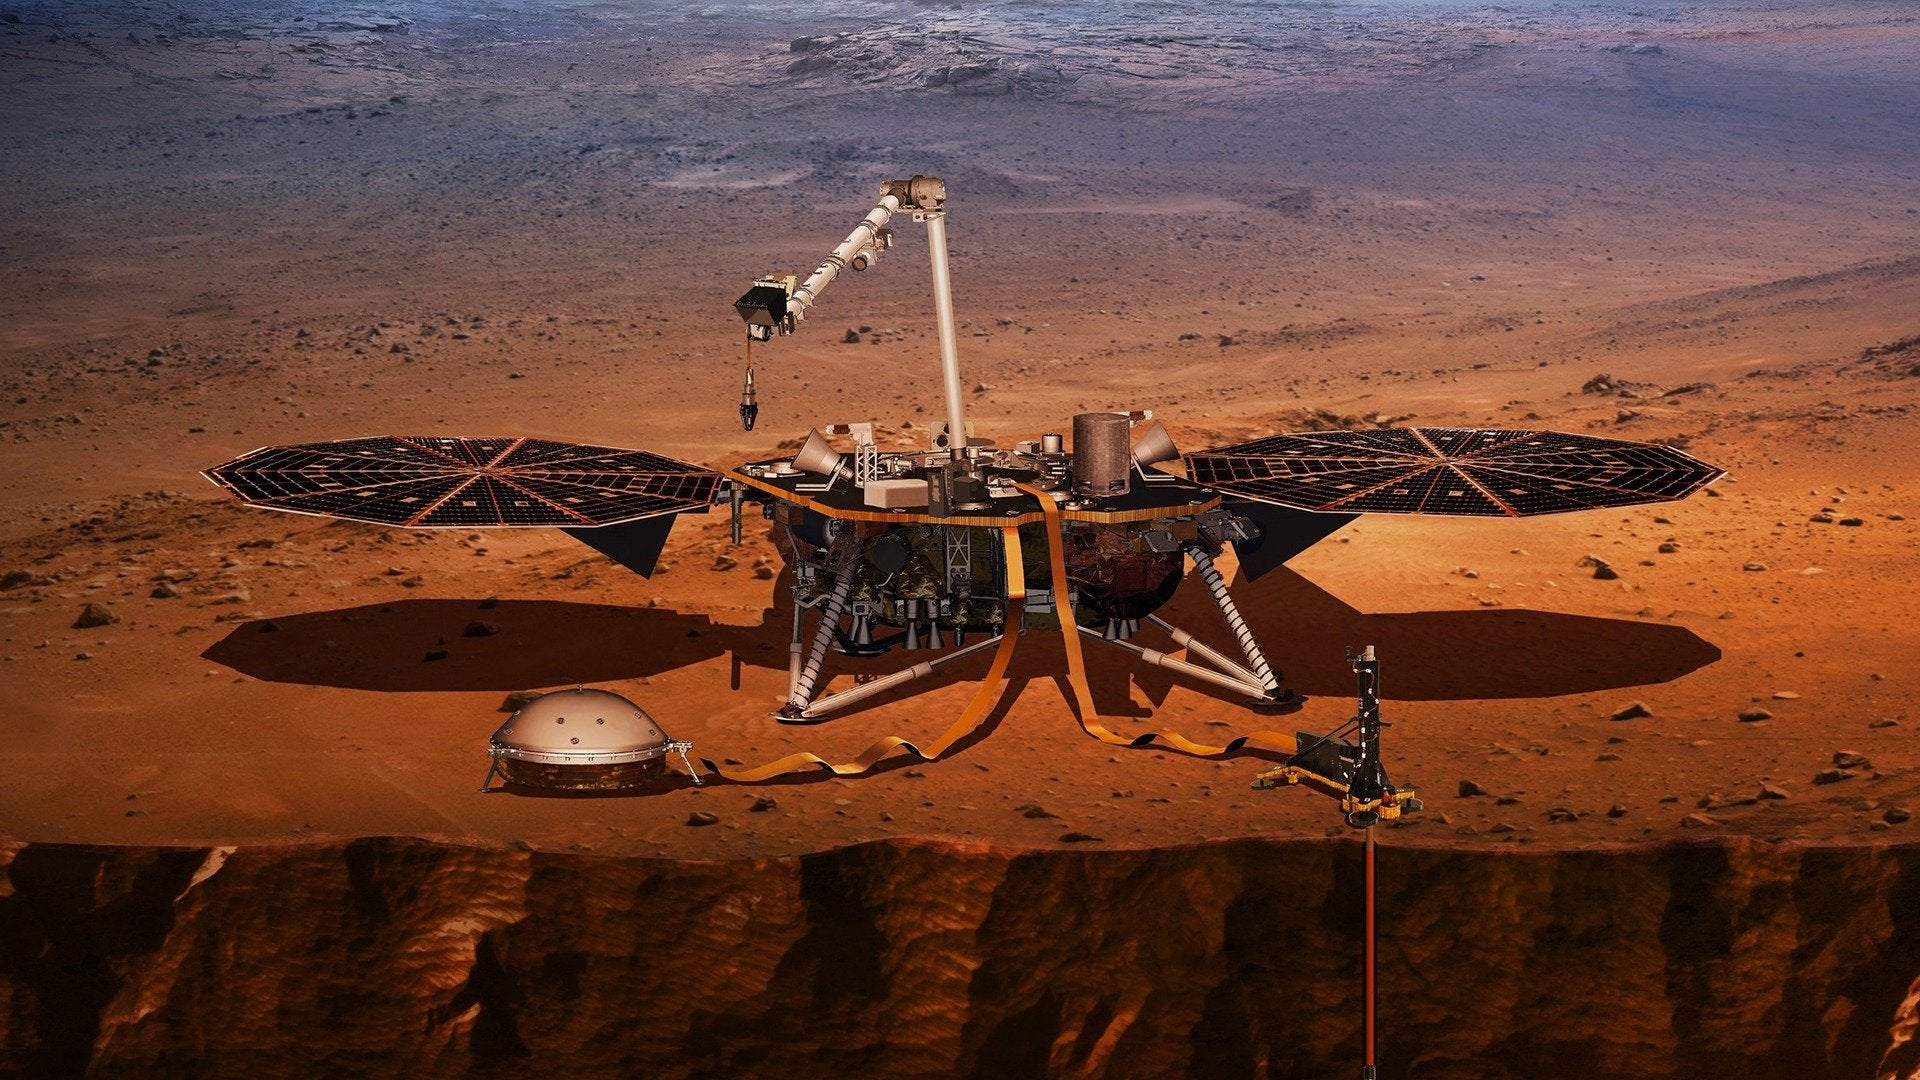 NASA's Mission to Mars: InSight Lander